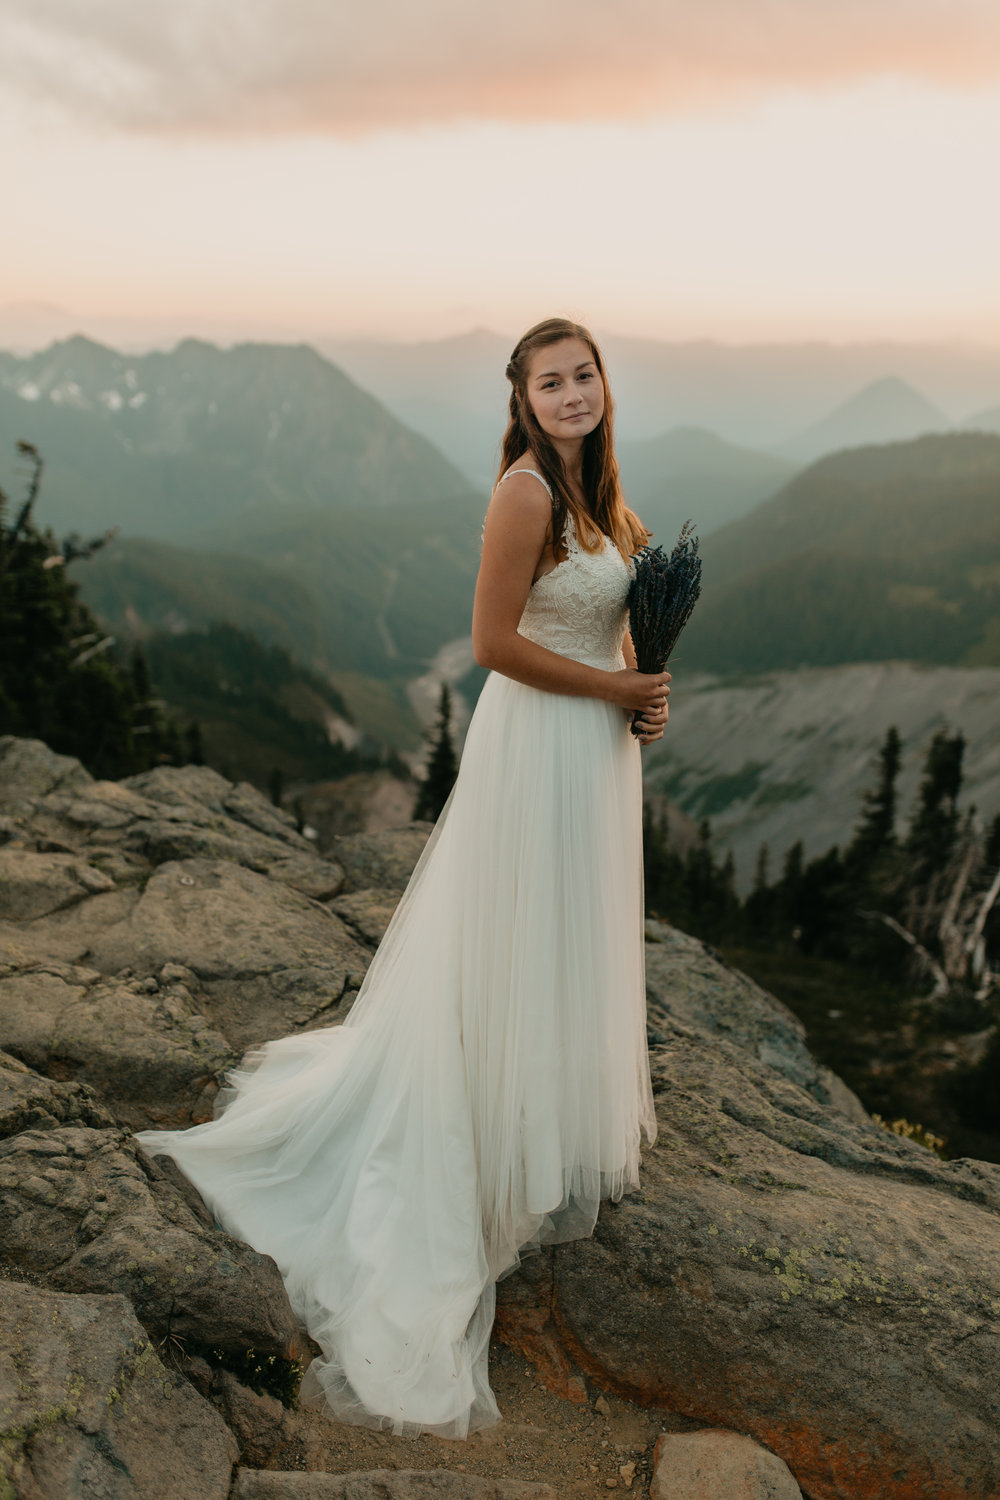 Nicole-Daacke-Photography-Mt-Rainier-elopement-photographer-washington-mountain-epic-wedding-photography-wildflowers-at-rainier-pine-tree-cloudy-summer-day-at-mountain-rainier-52.jpg